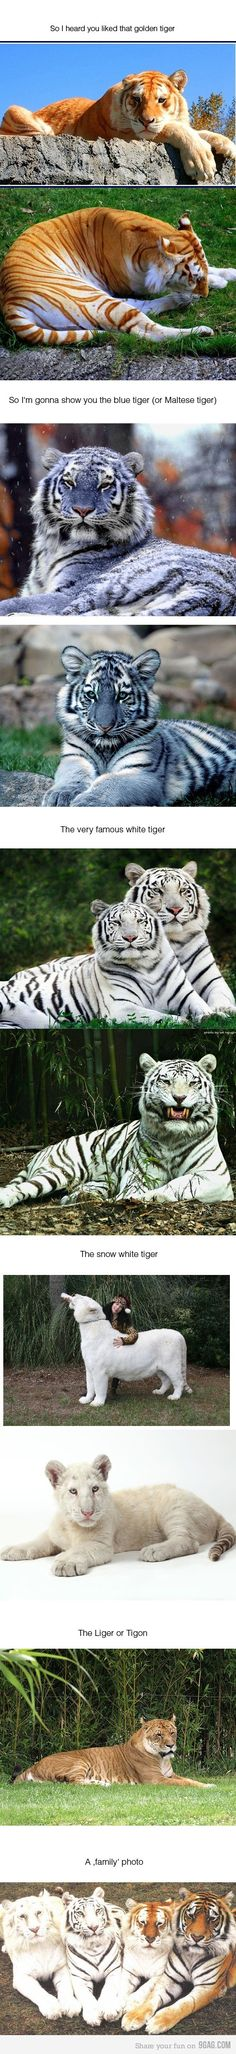 NEW FAVORITE ANIMAL. MALTESE BLUE TIGER. It will now be 1. Maltese tigers and, 2. Dolphins.